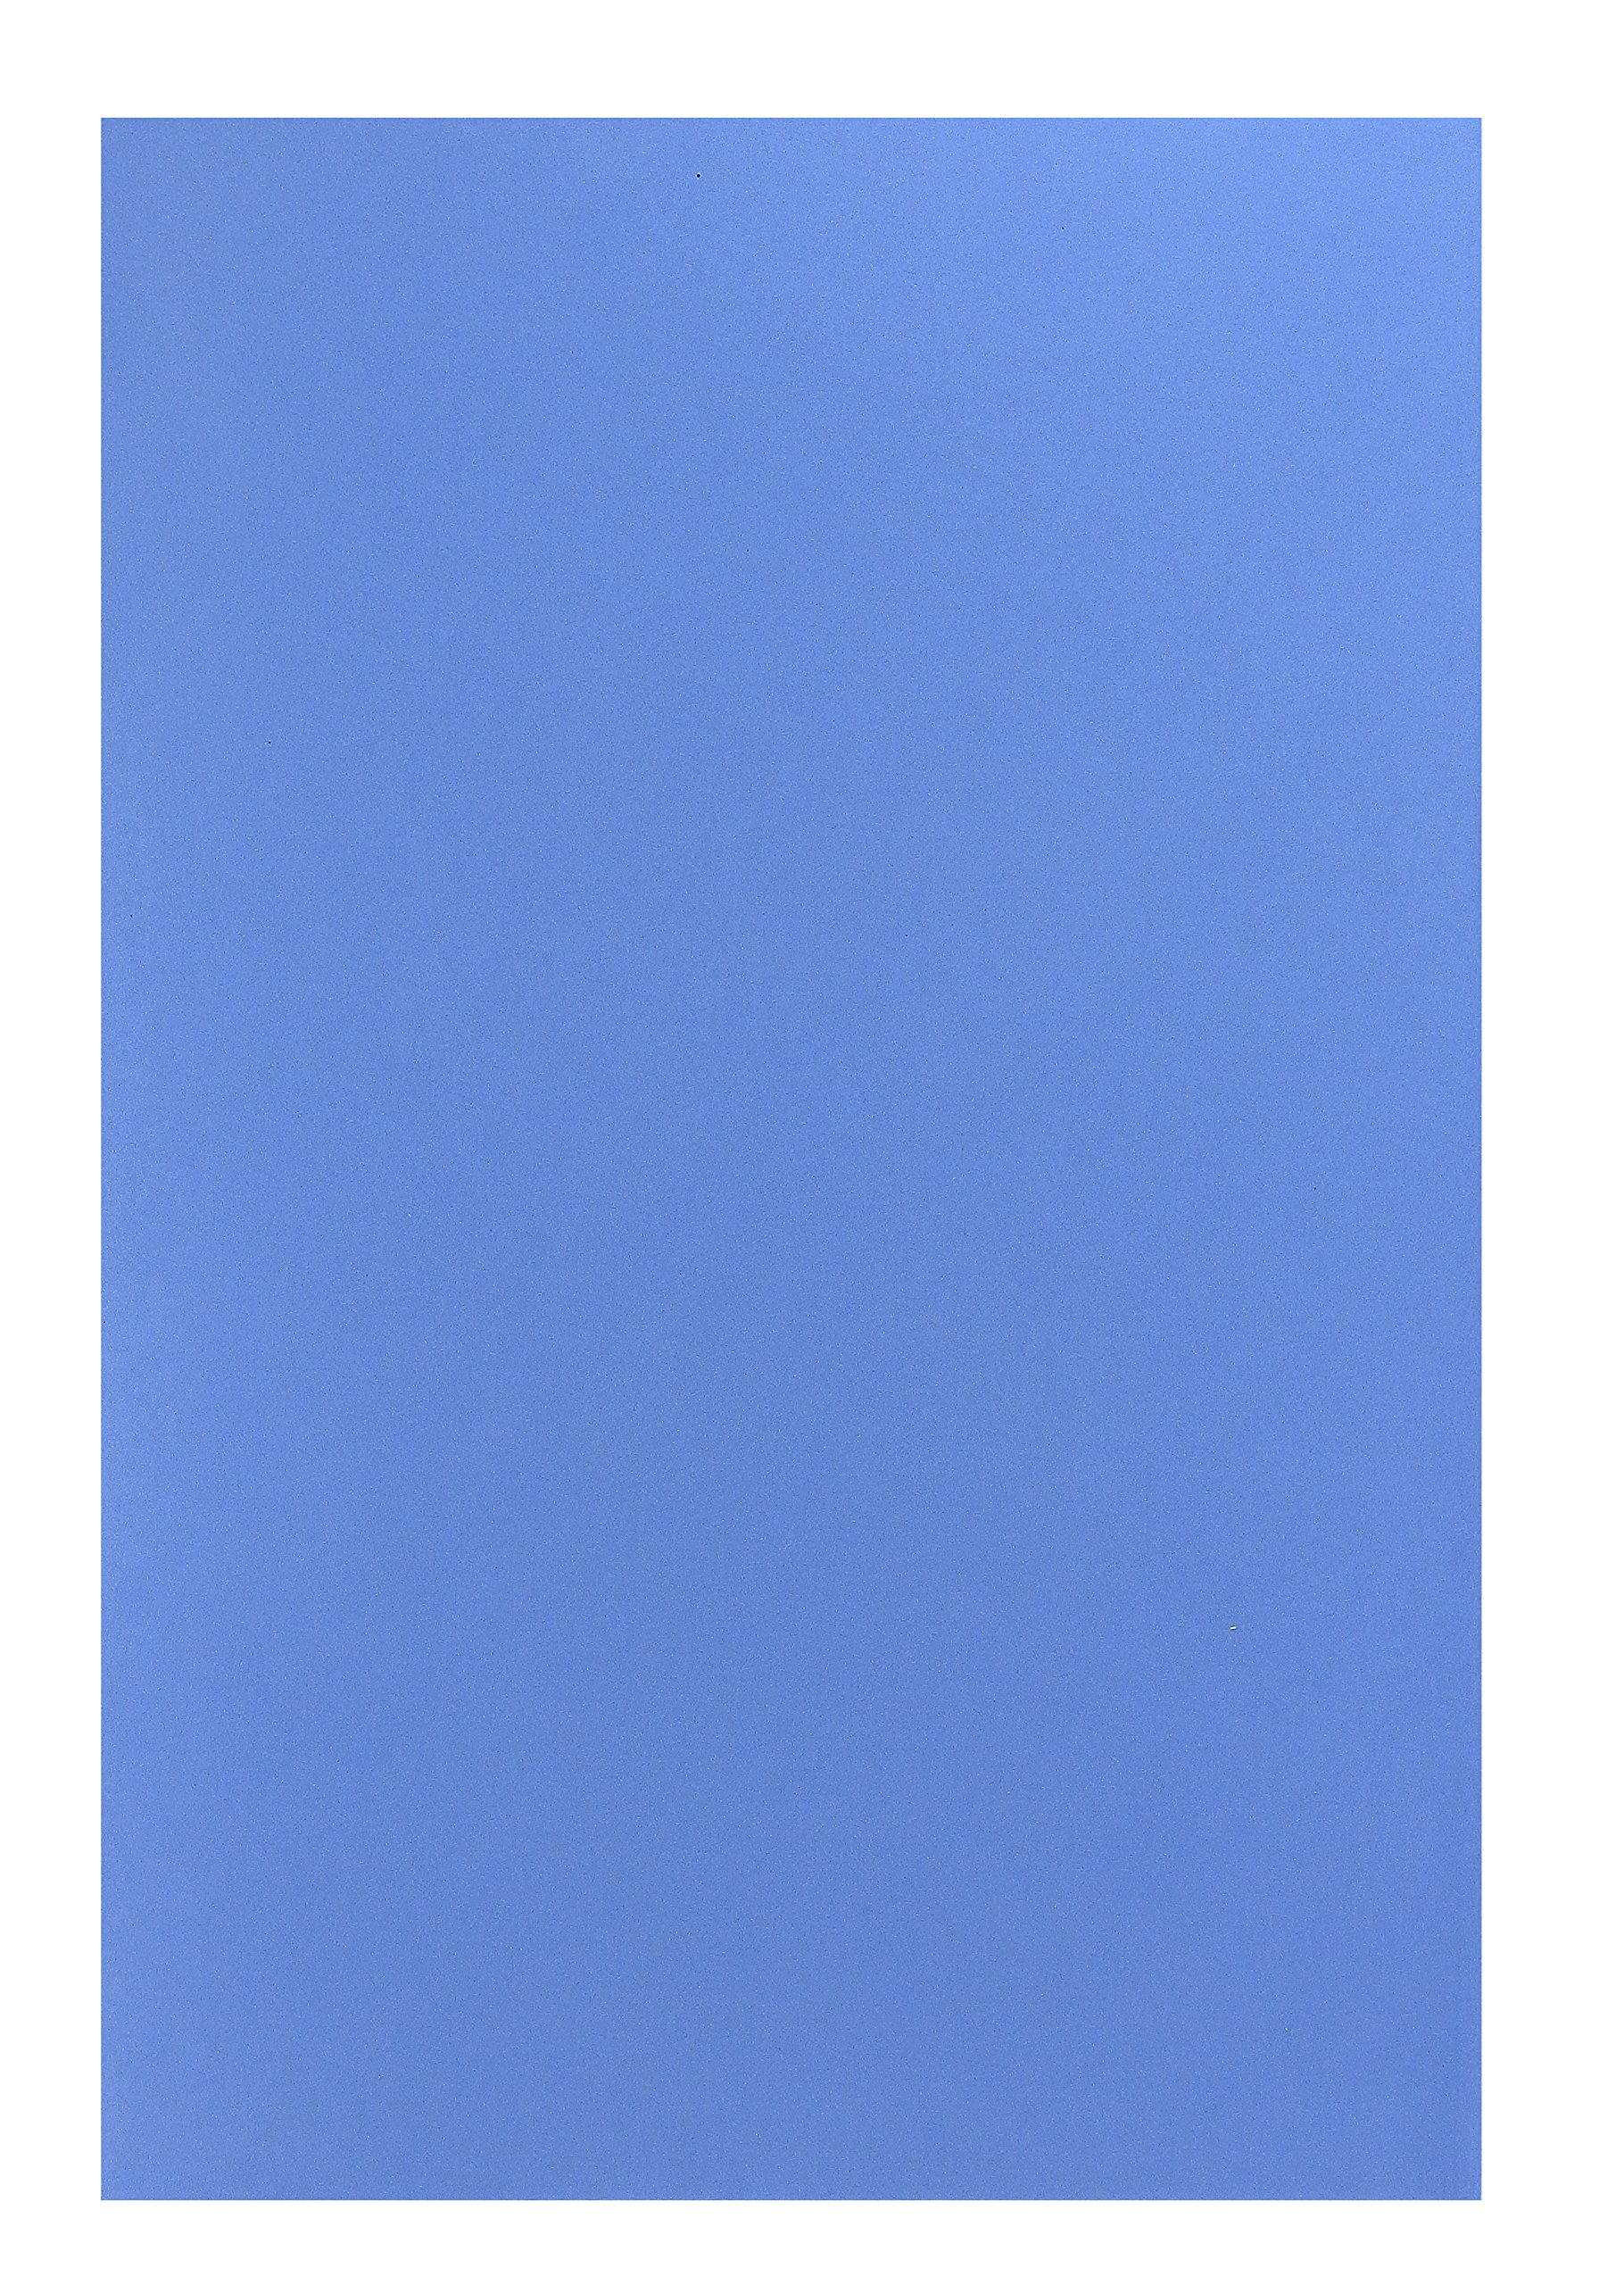 Hygloss Sheets for Crafts Colorful Foam for DIY Arts & Craft, 12'' x 18'', Blue, 10 Piece